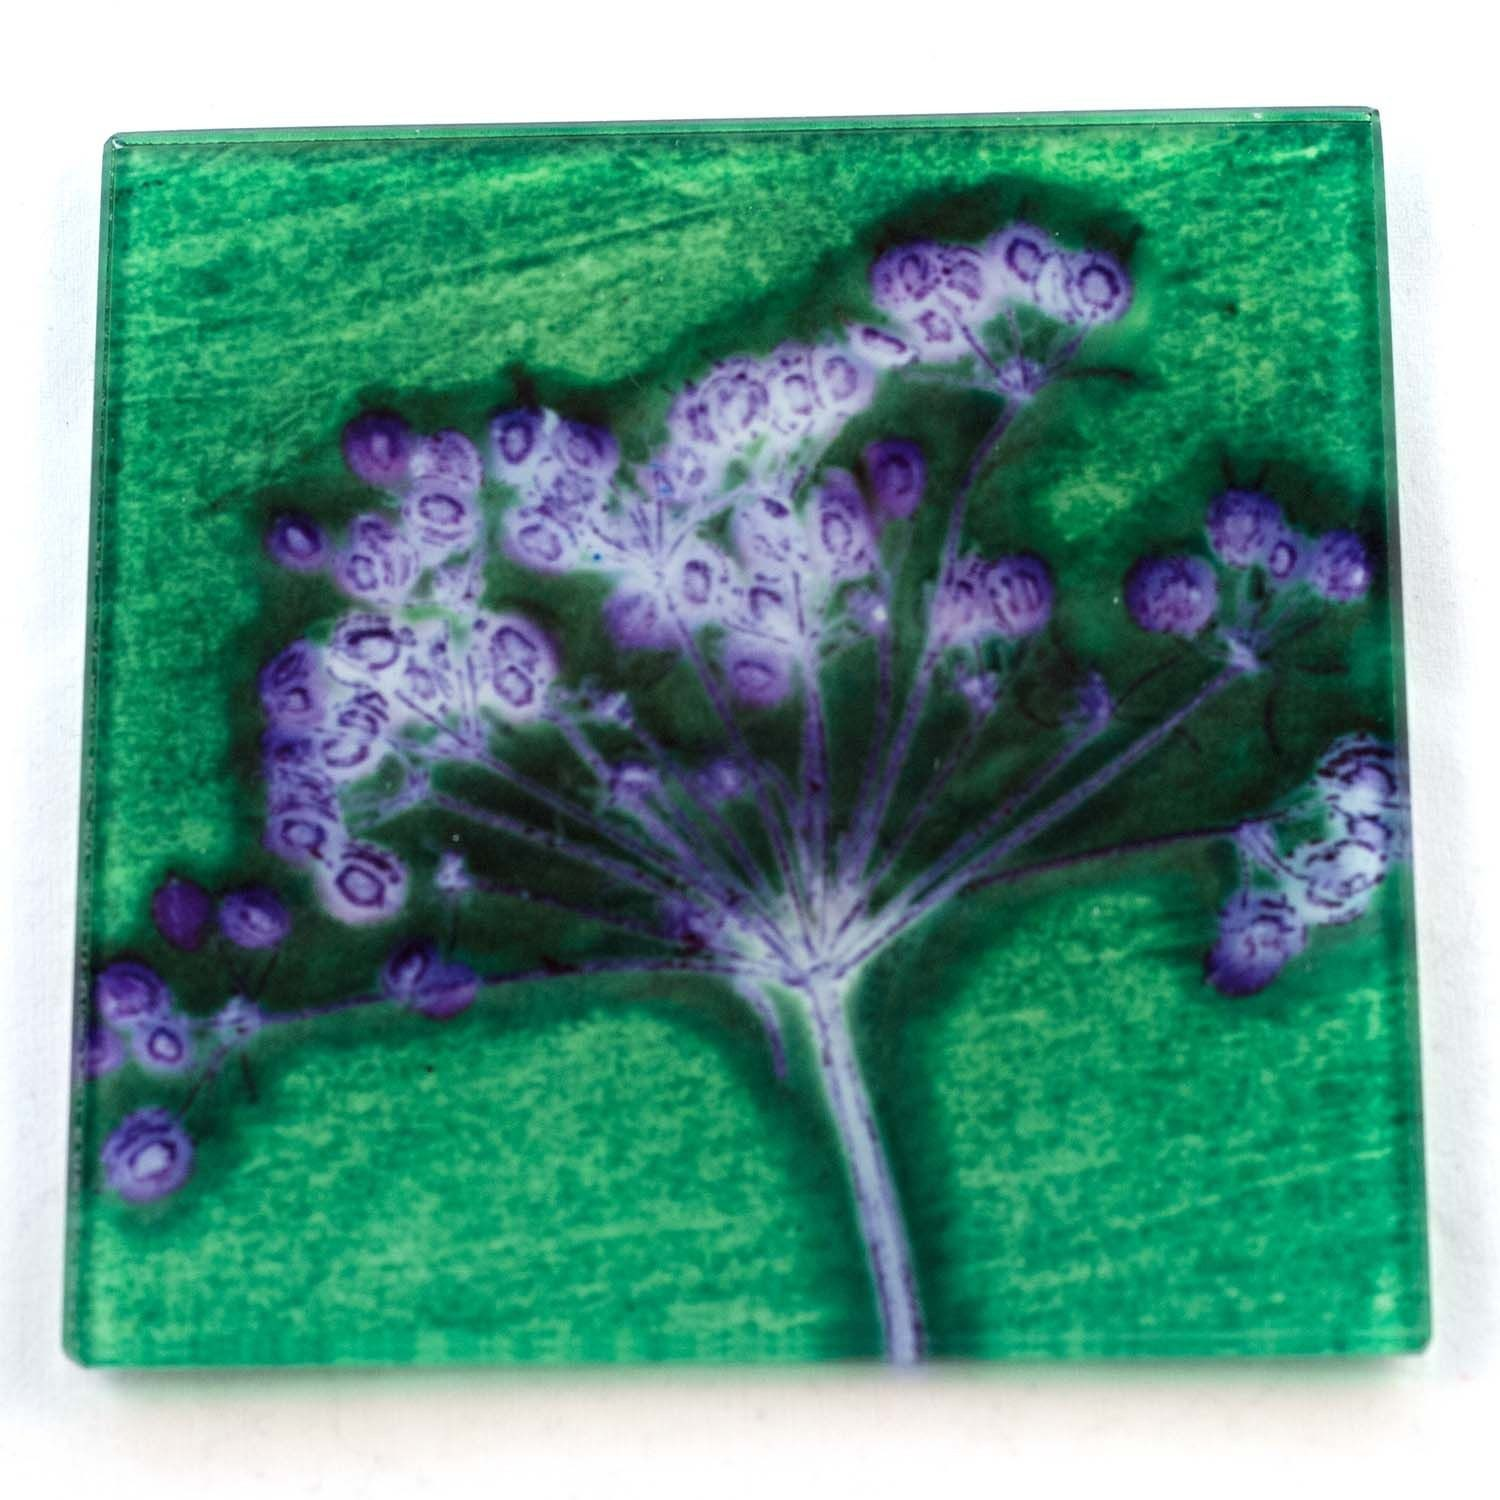 Green Joyous Spread Botanic Style Glass Coaster